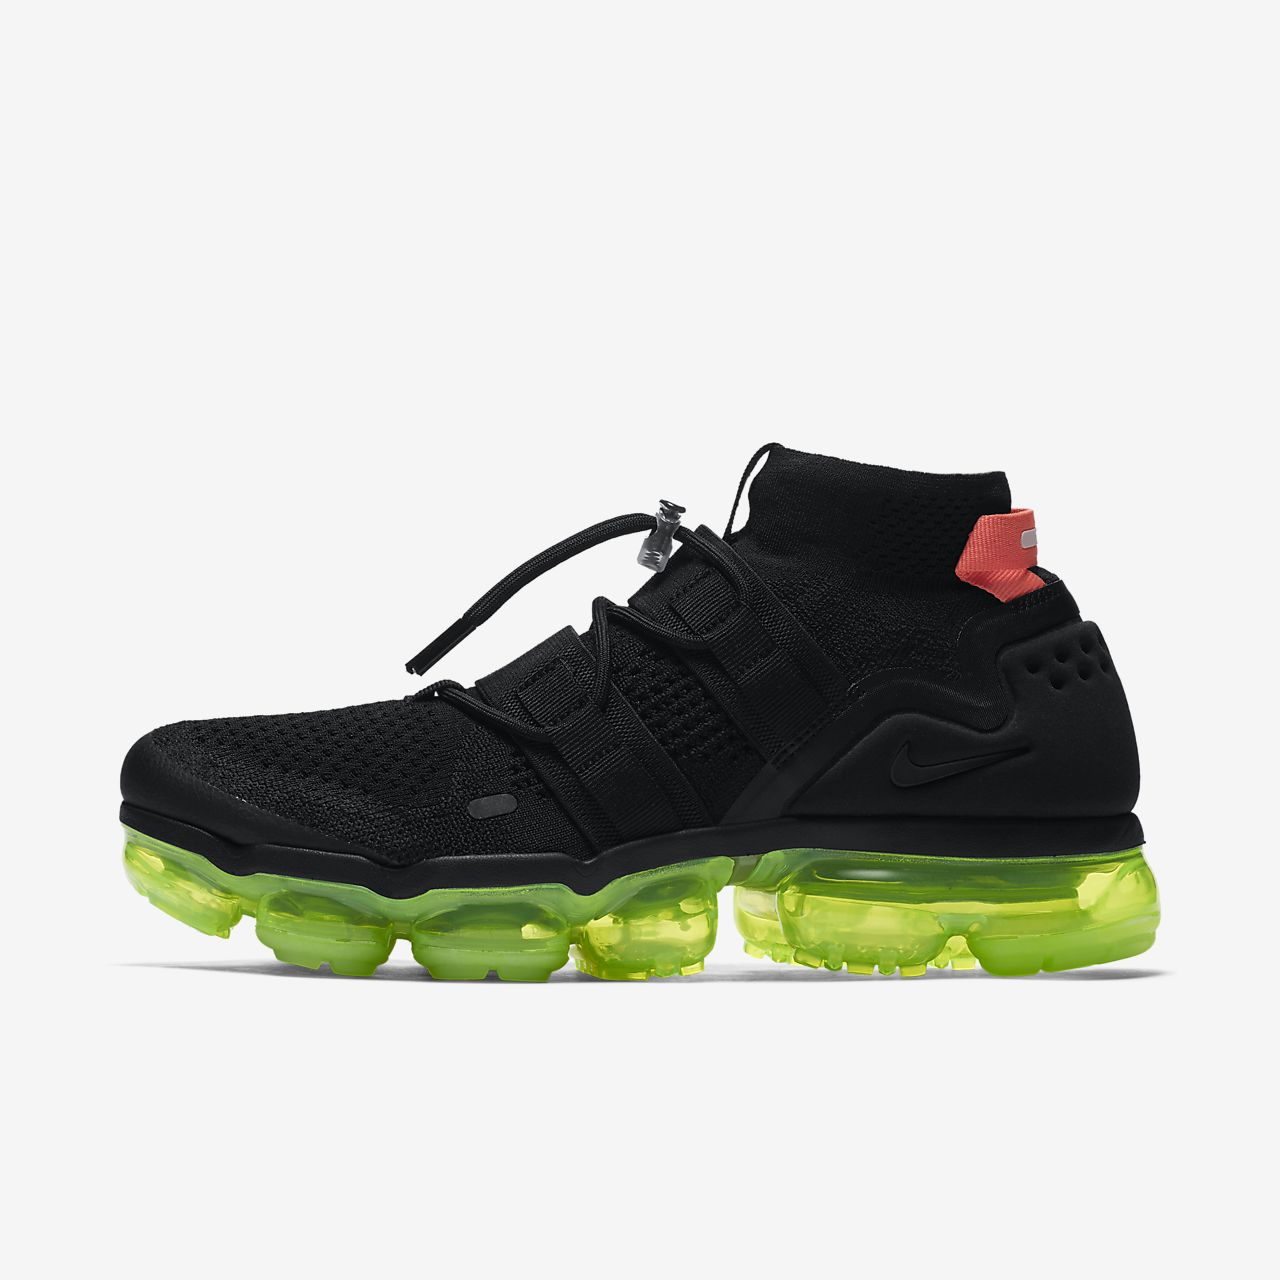 new concept f3e43 03263 ... Nike Air VaporMax Flyknit Utility Shoe